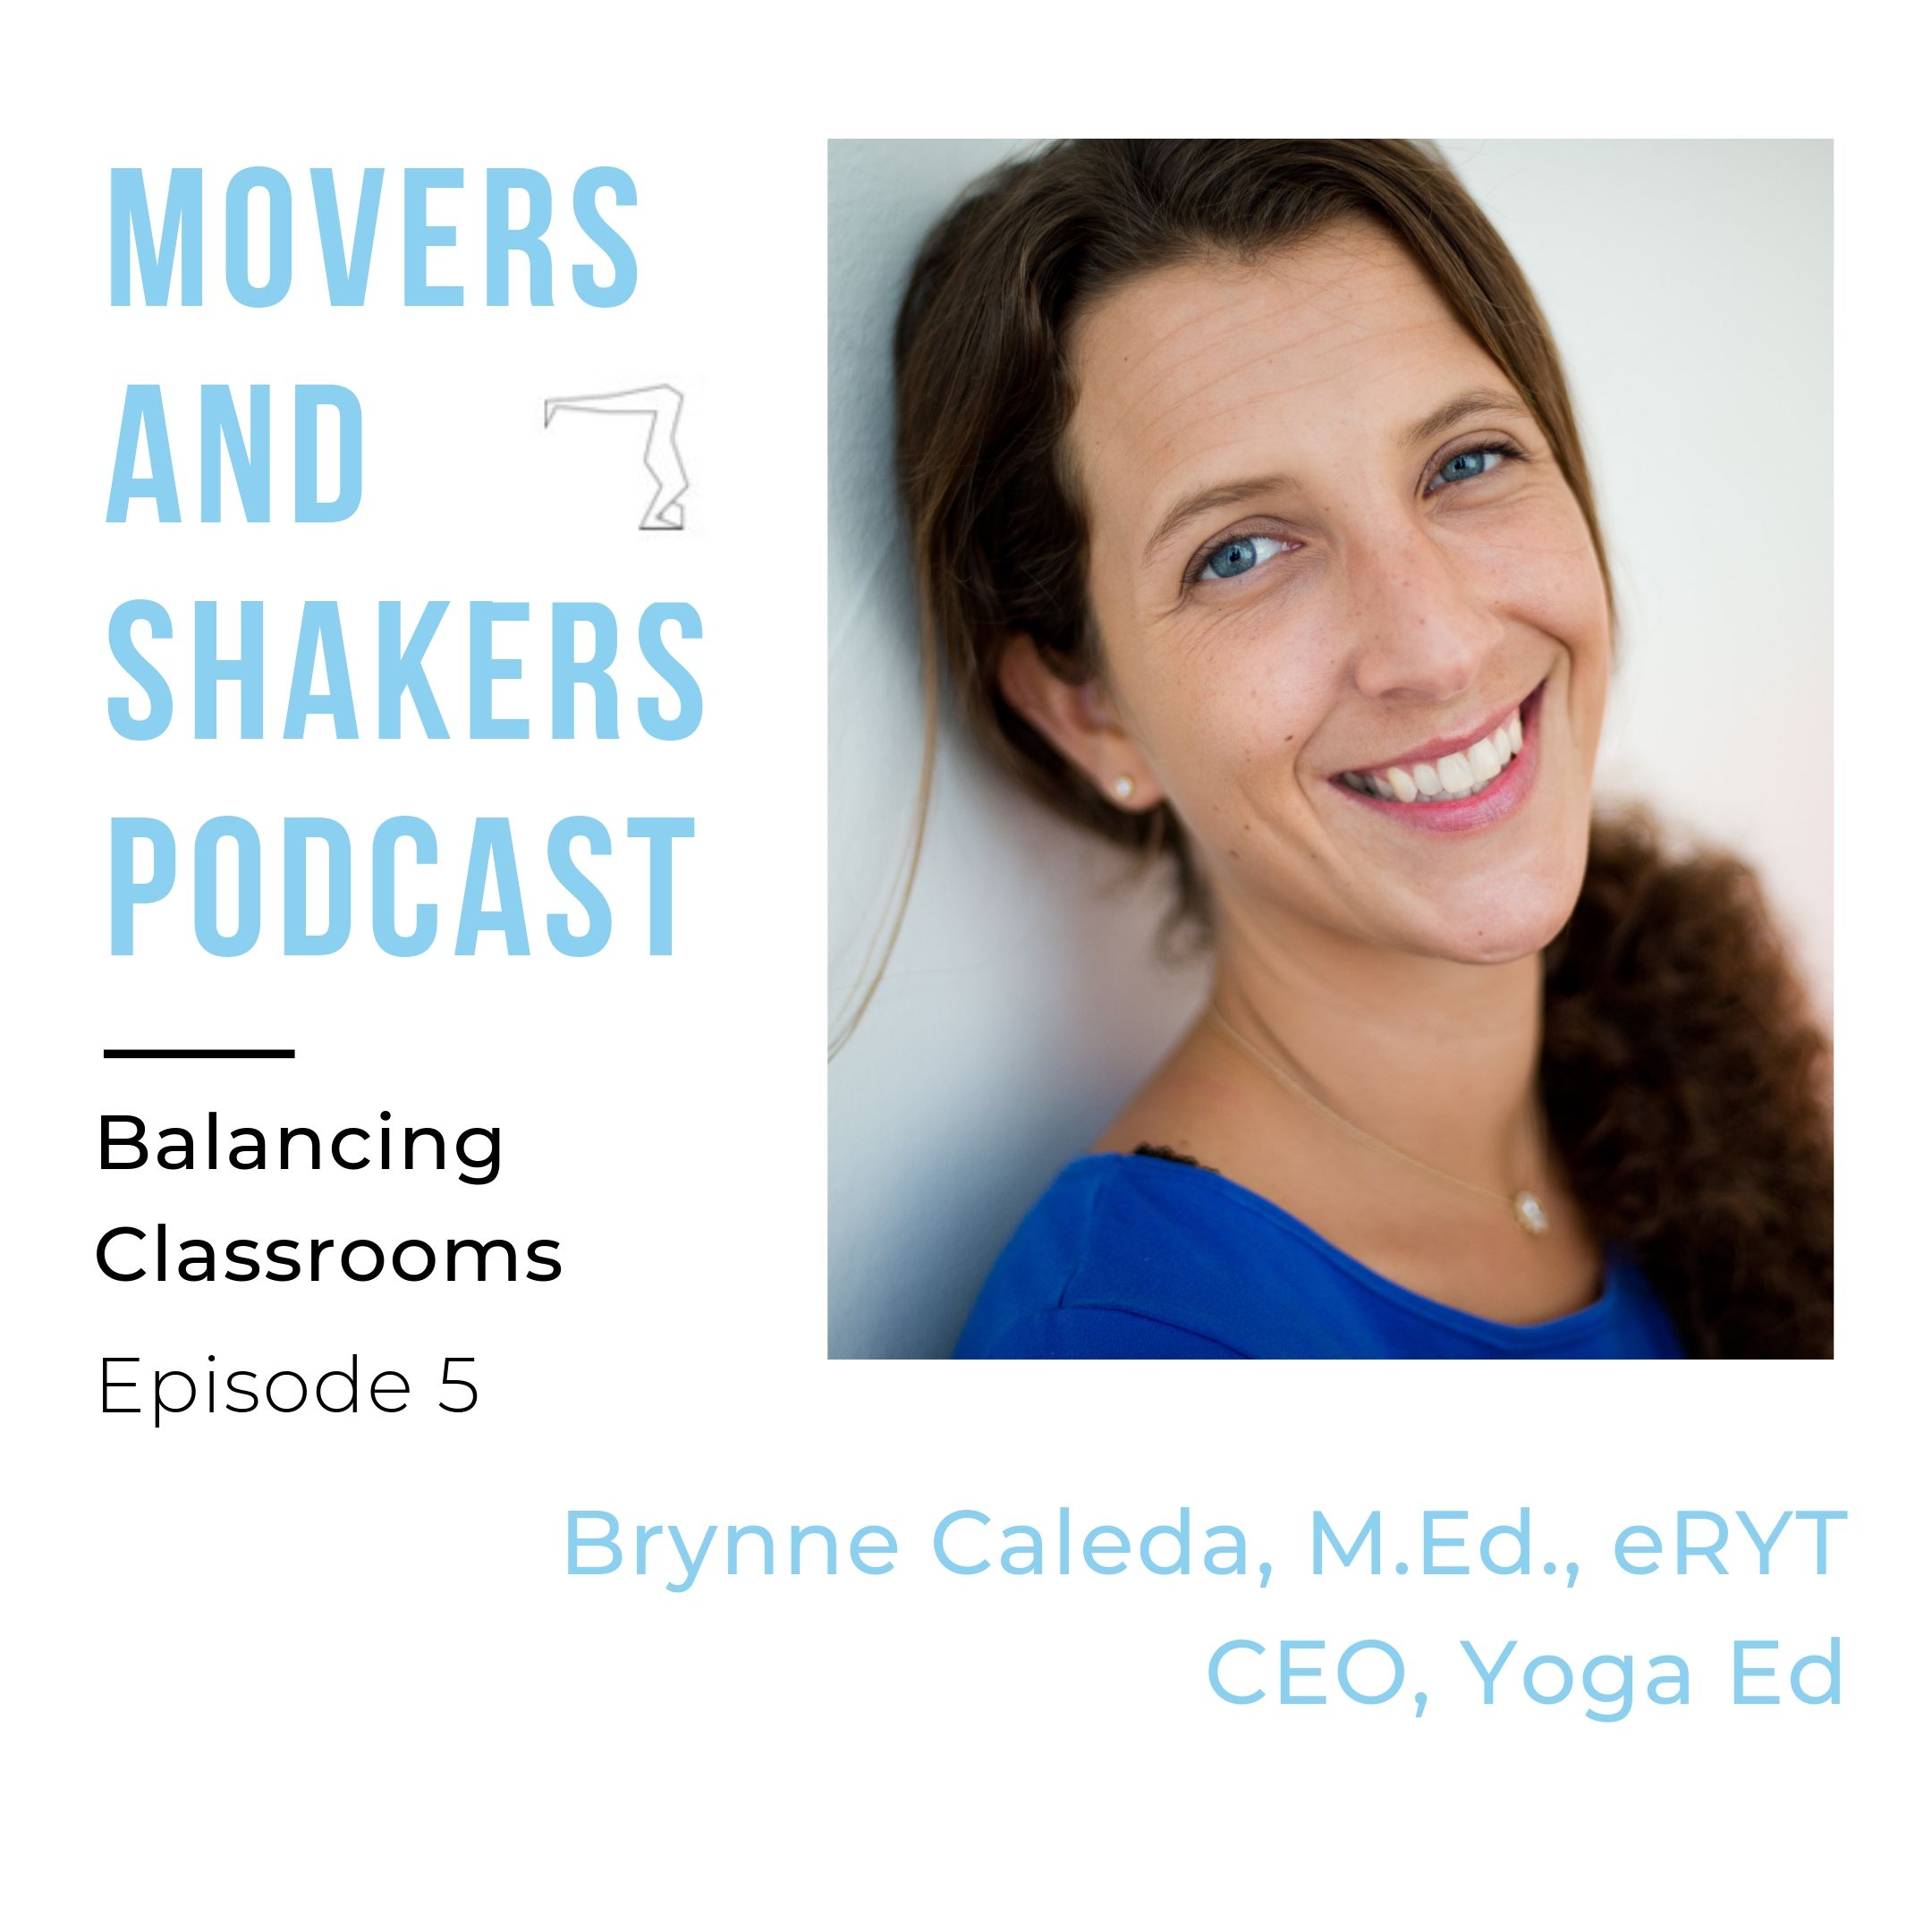 balance movers and shakers podcast - brynne caleda CEO of yoga ed